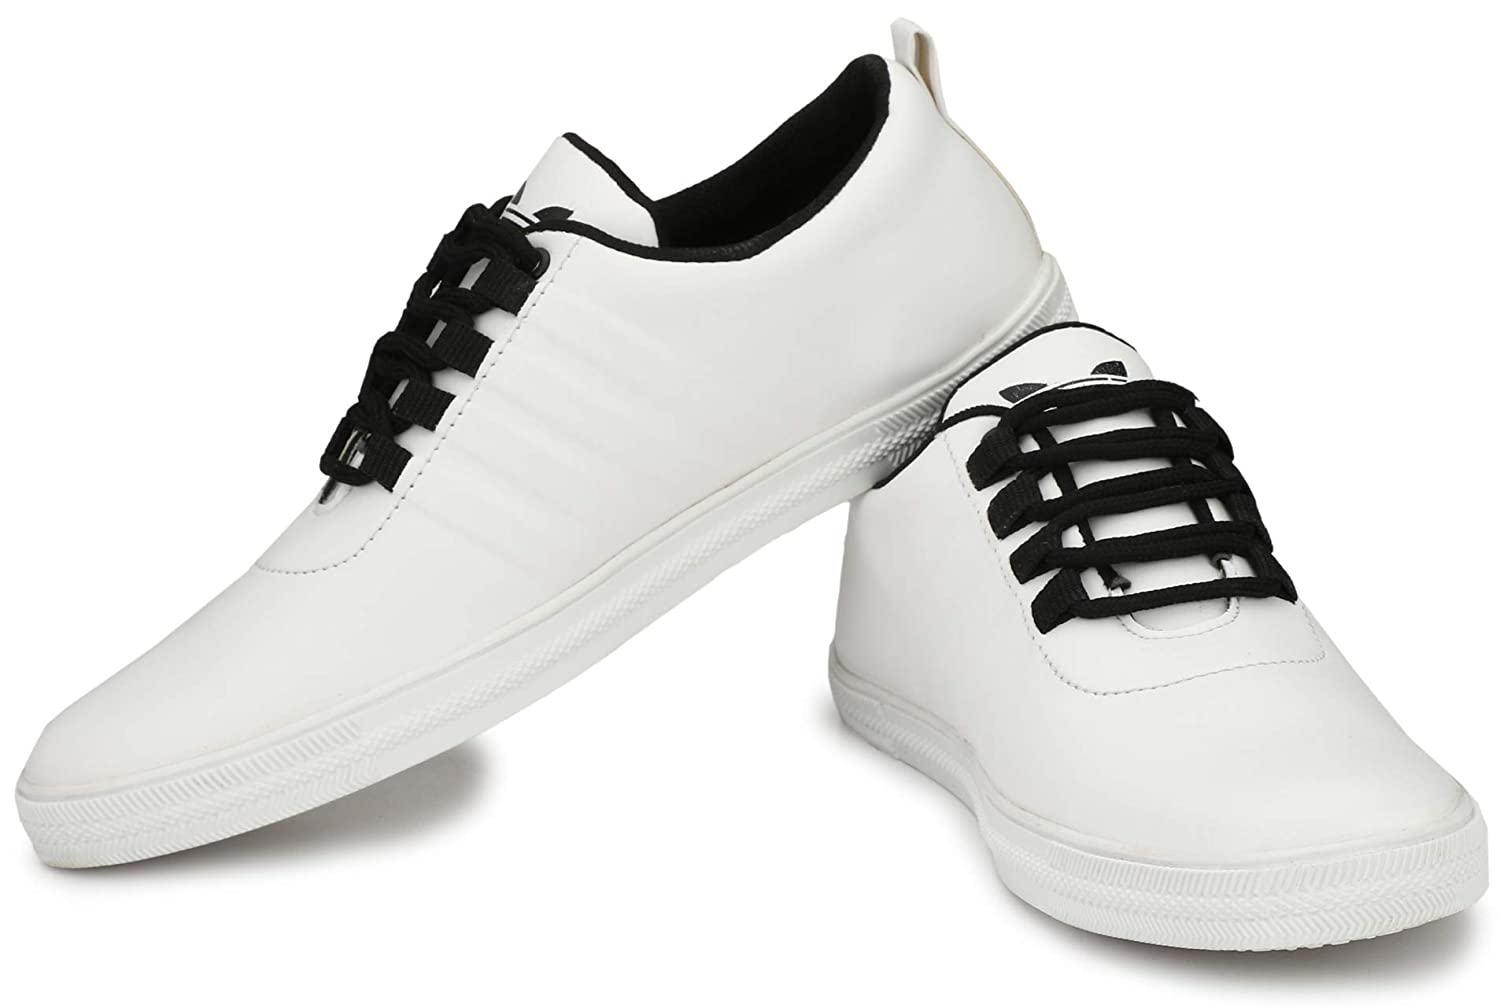 White Stylish Casual Sneakers Shoes